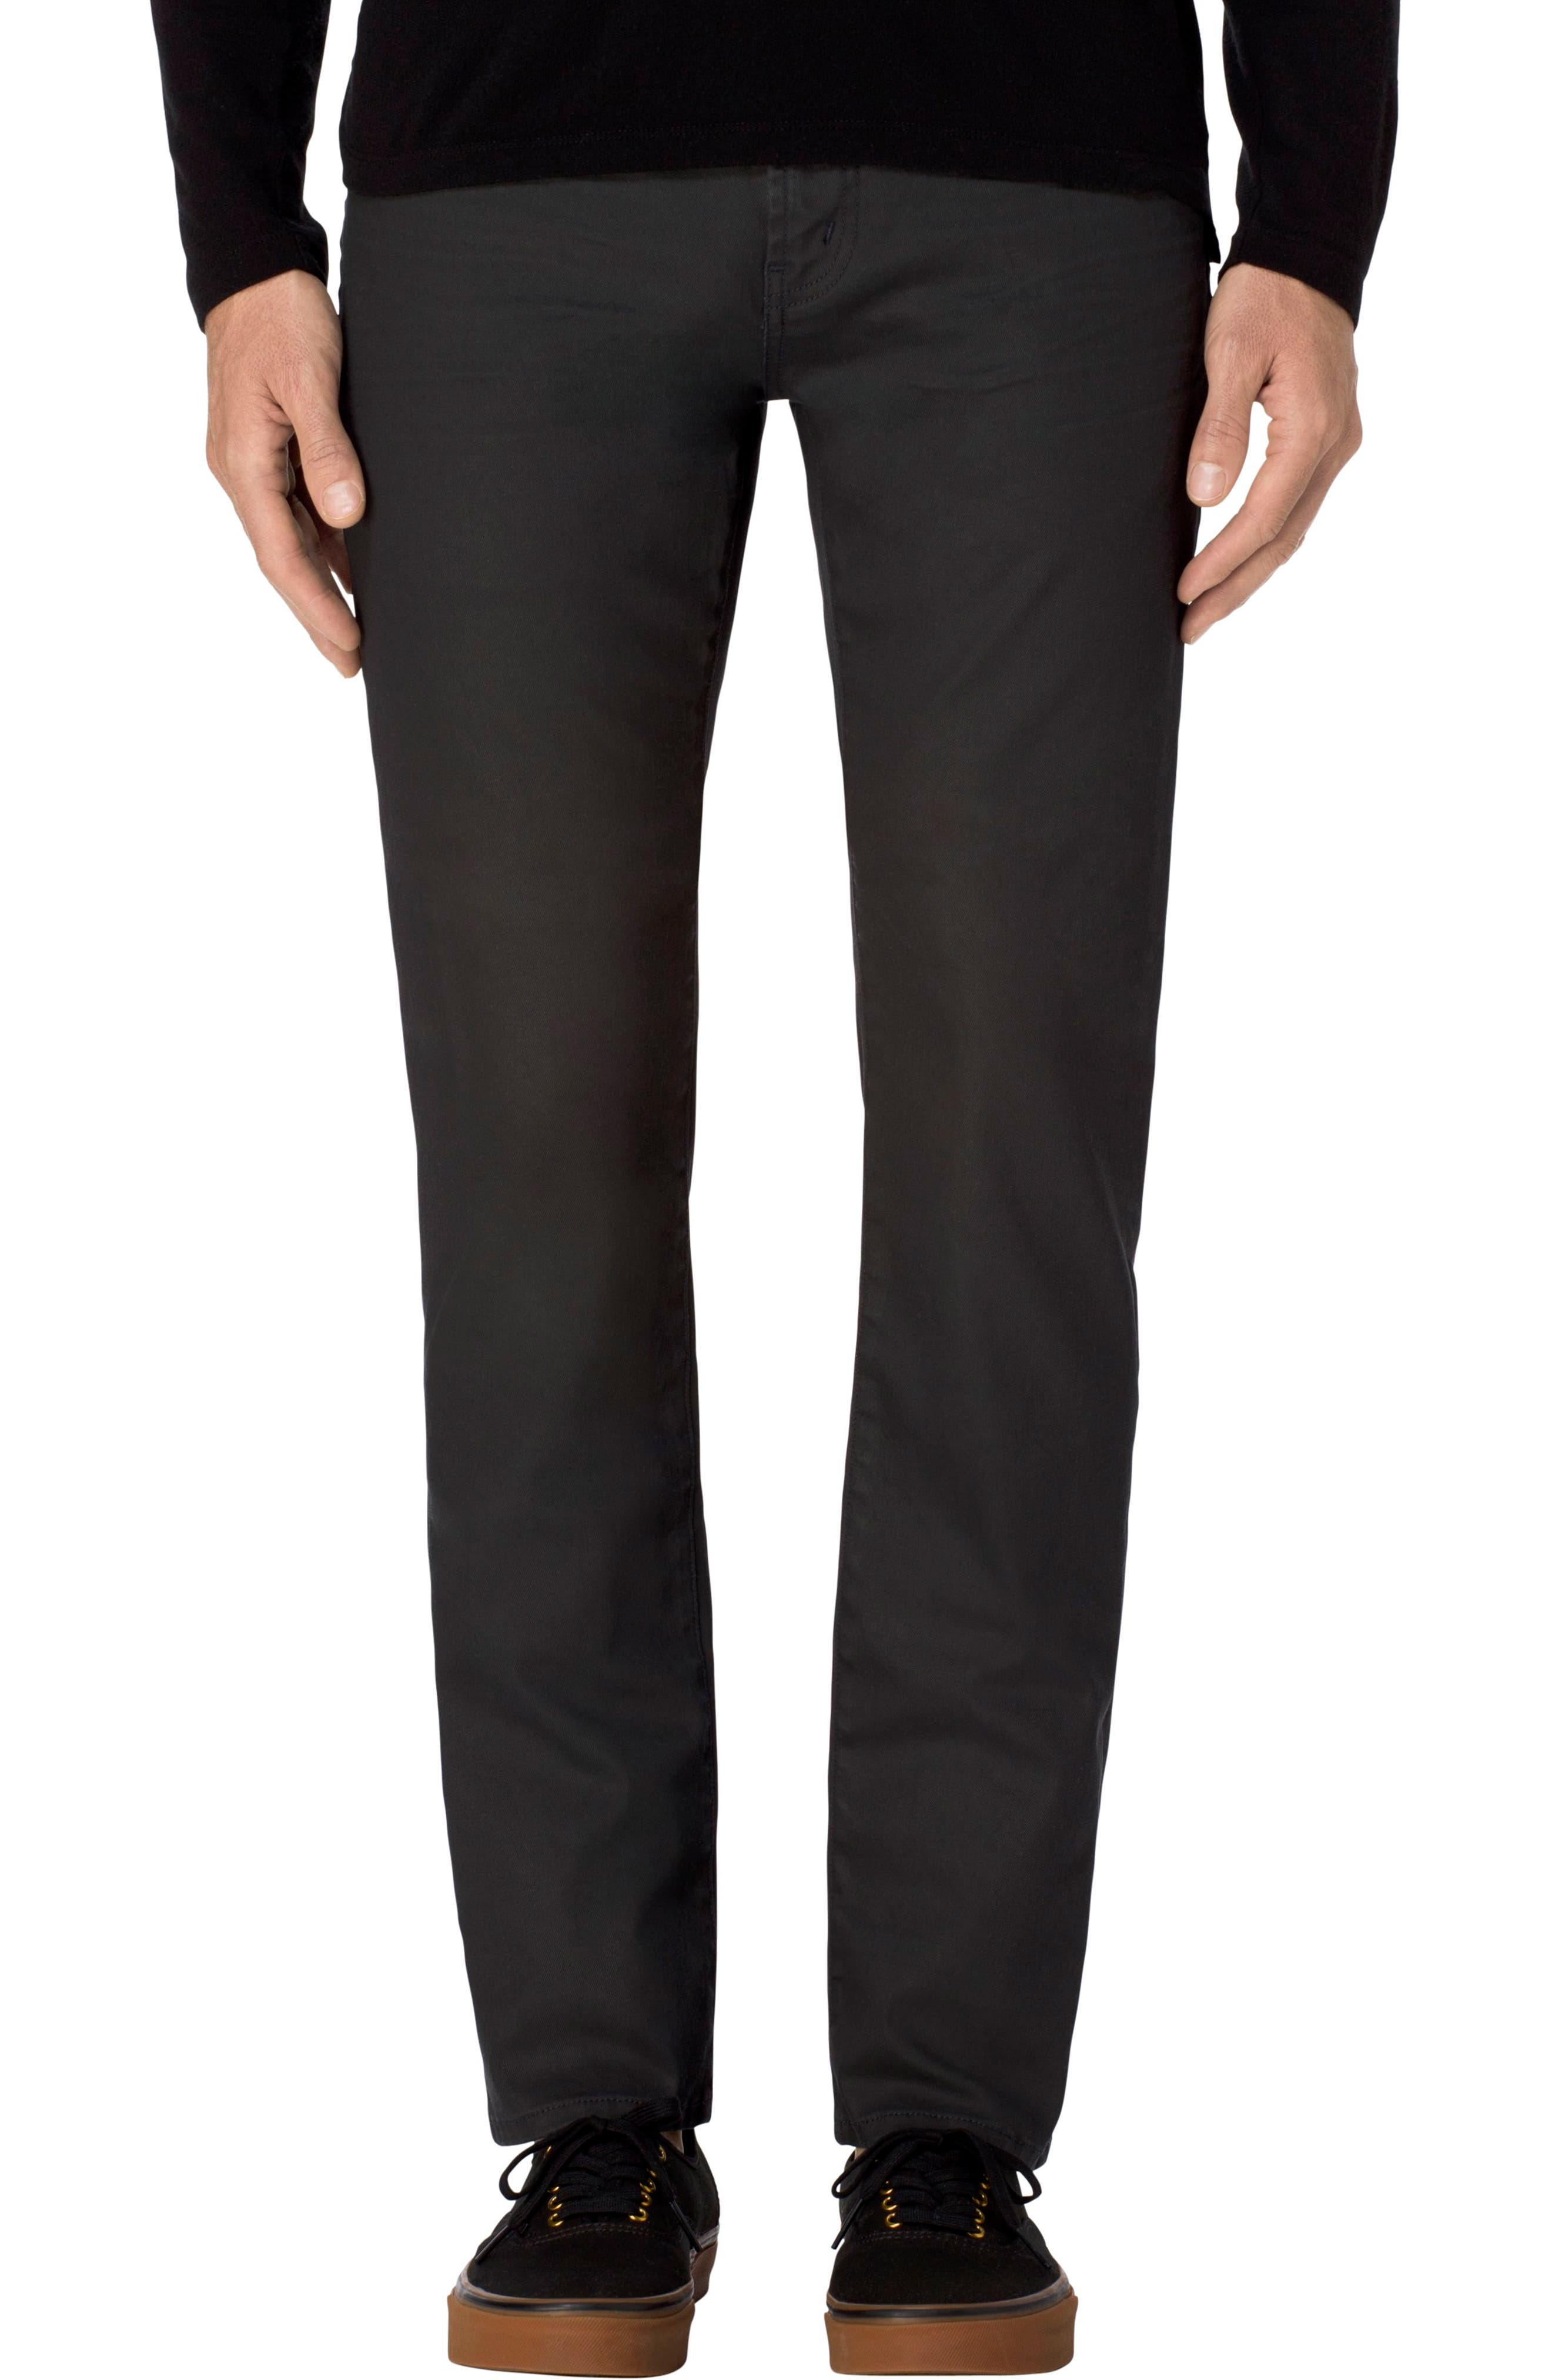 Kane Slim Straight Fit Jeans,                         Main,                         color, 022